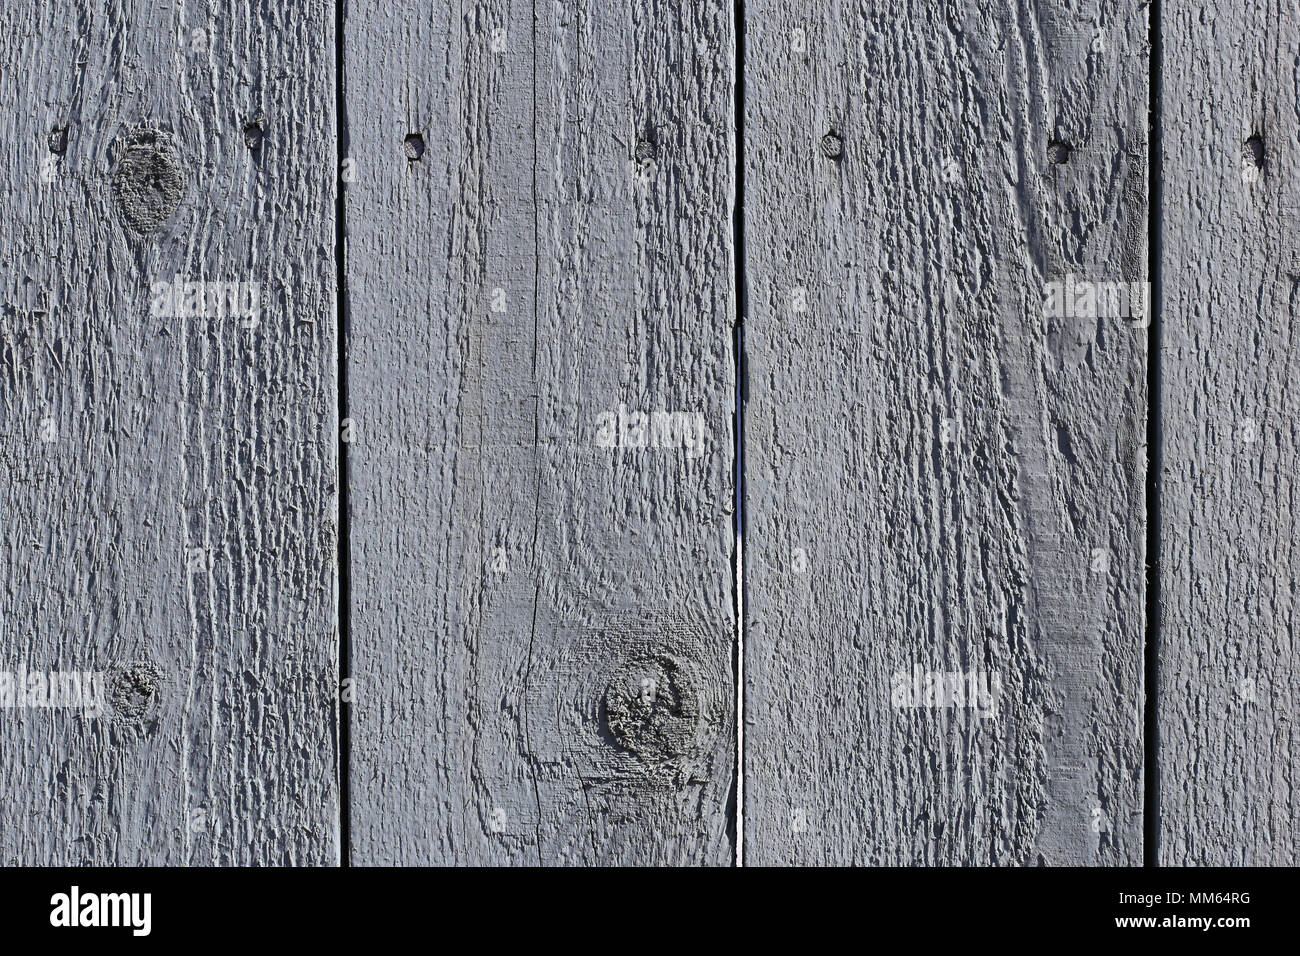 A closeup photo of an exterior of a wooden wall with some horizontal lines and cracked old paint. - Stock Image